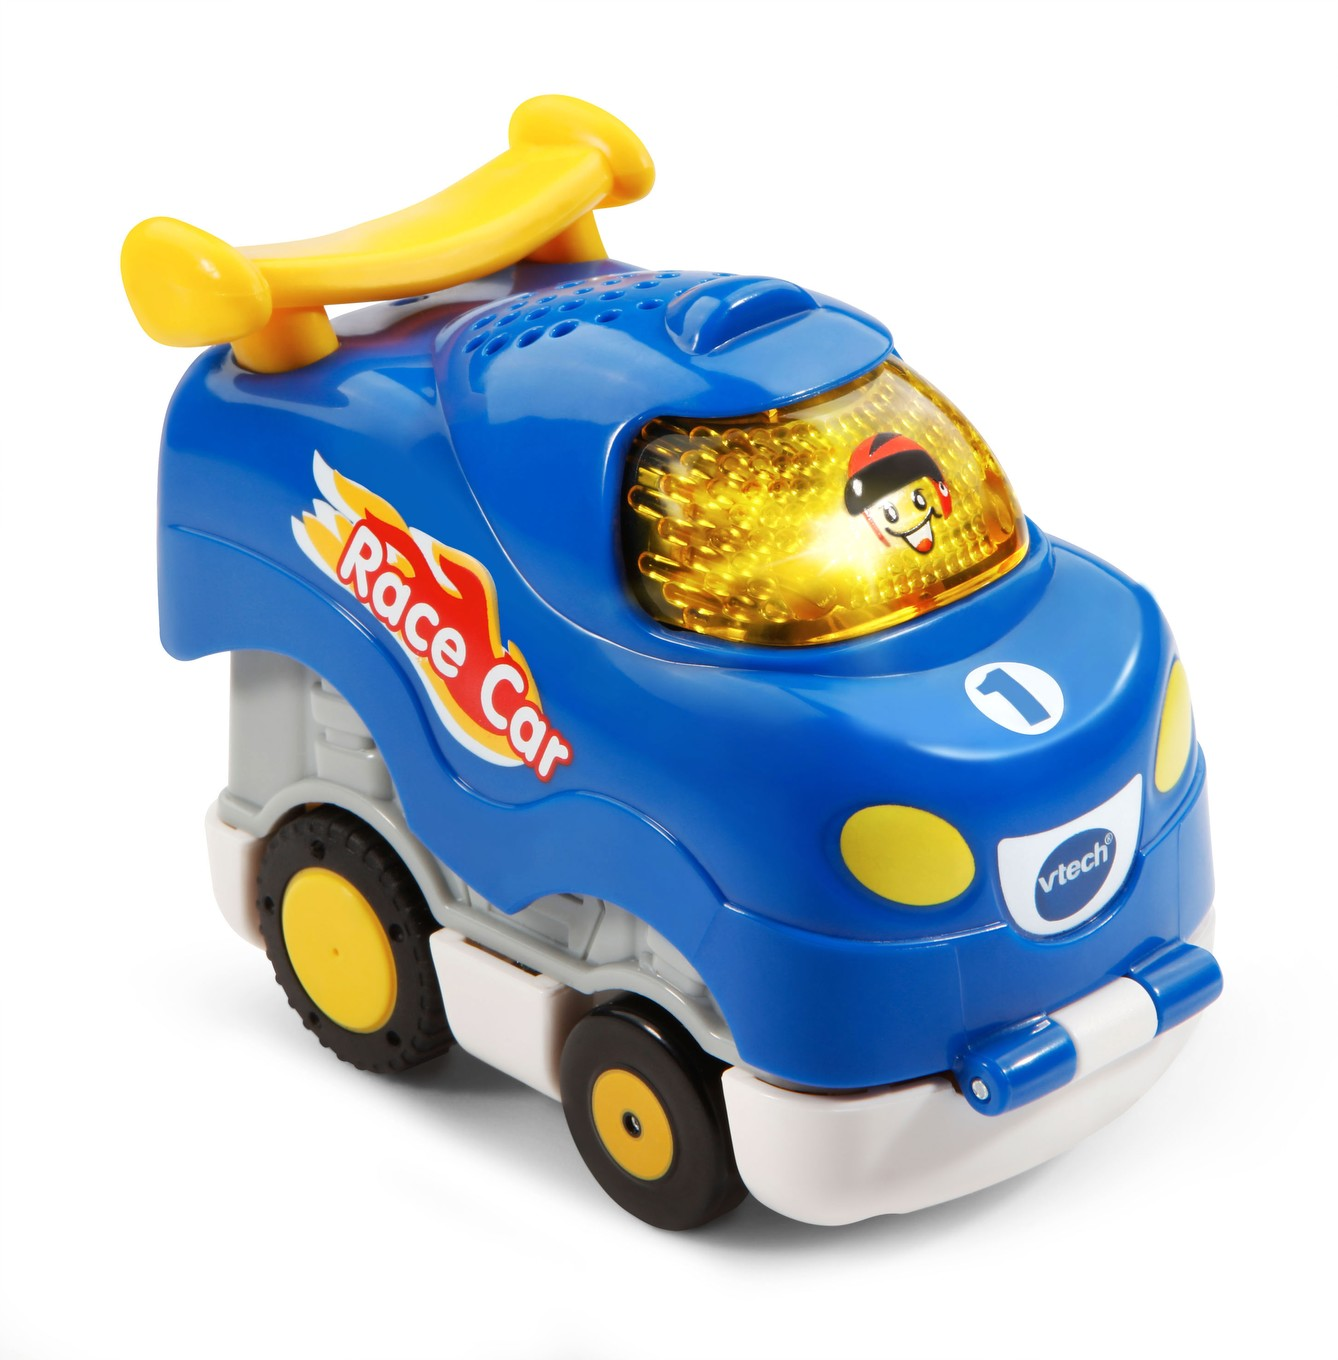 Go Smart Wheels Press Race Car